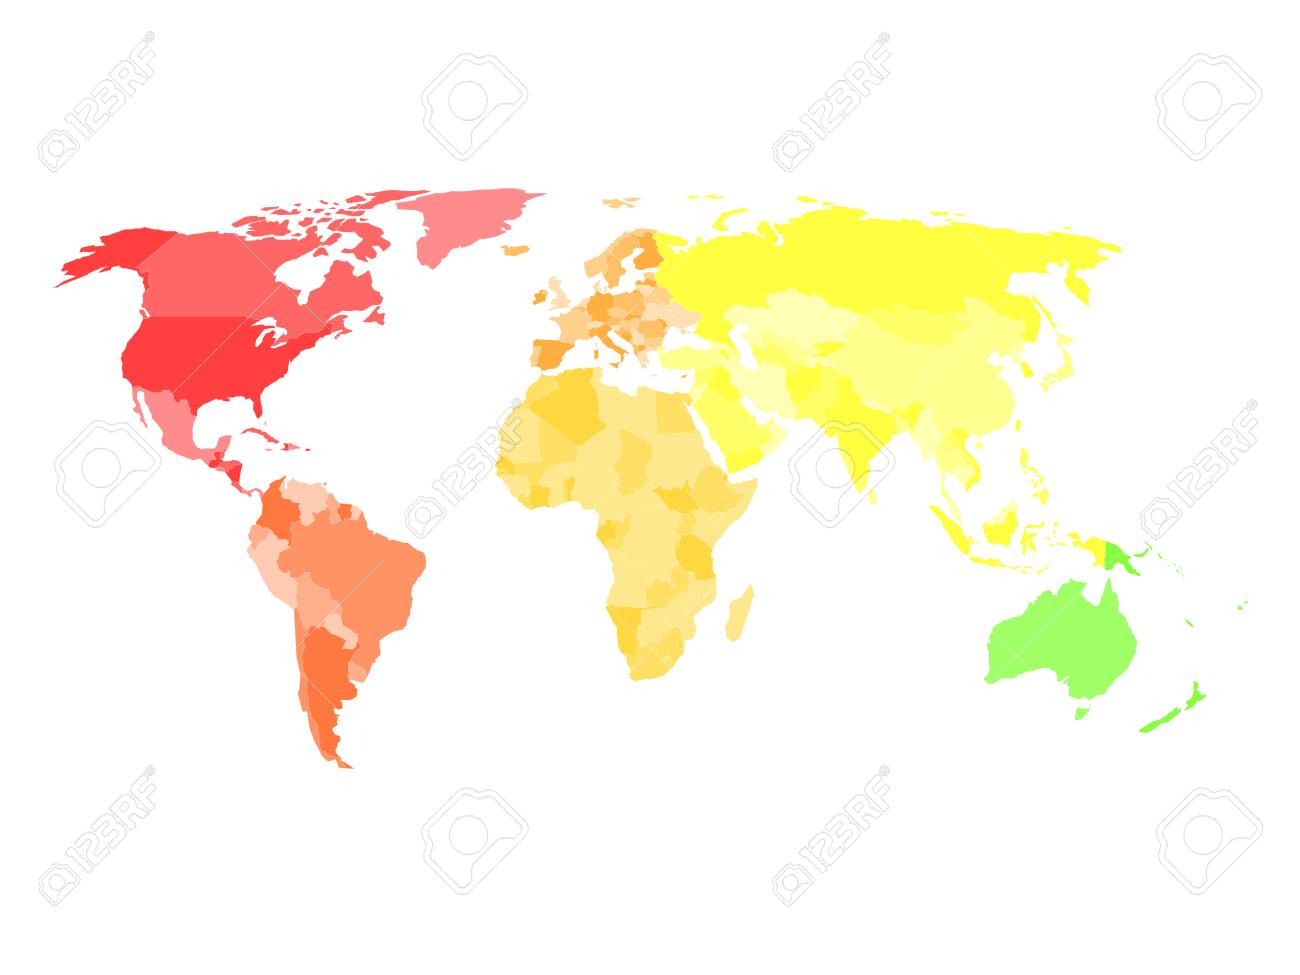 Blank simplified political map of world with different colors.. on latin america blank political map, central america blank political map, north america blank continent, north america blank rivers map,